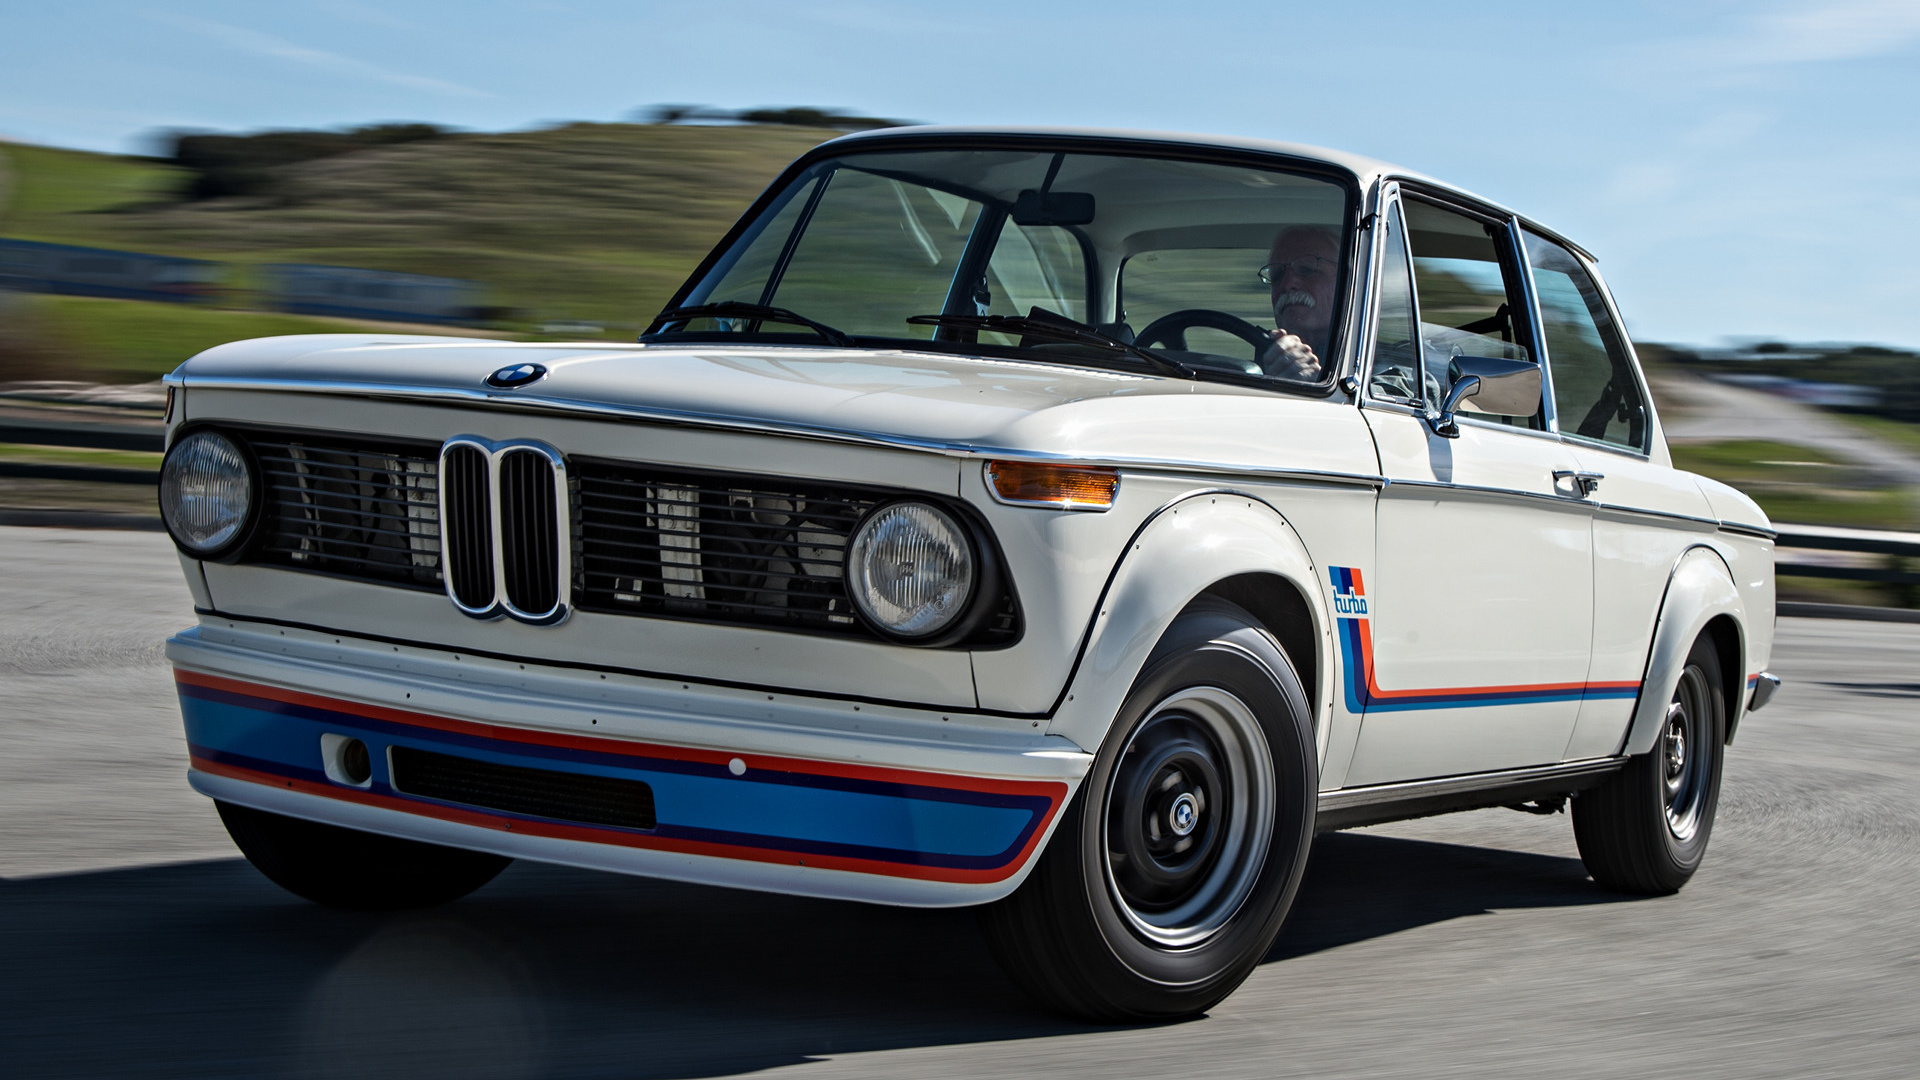 Bmw 2002 Turbo 1974 1920x1080 Download Hd Wallpaper Wallpapertip